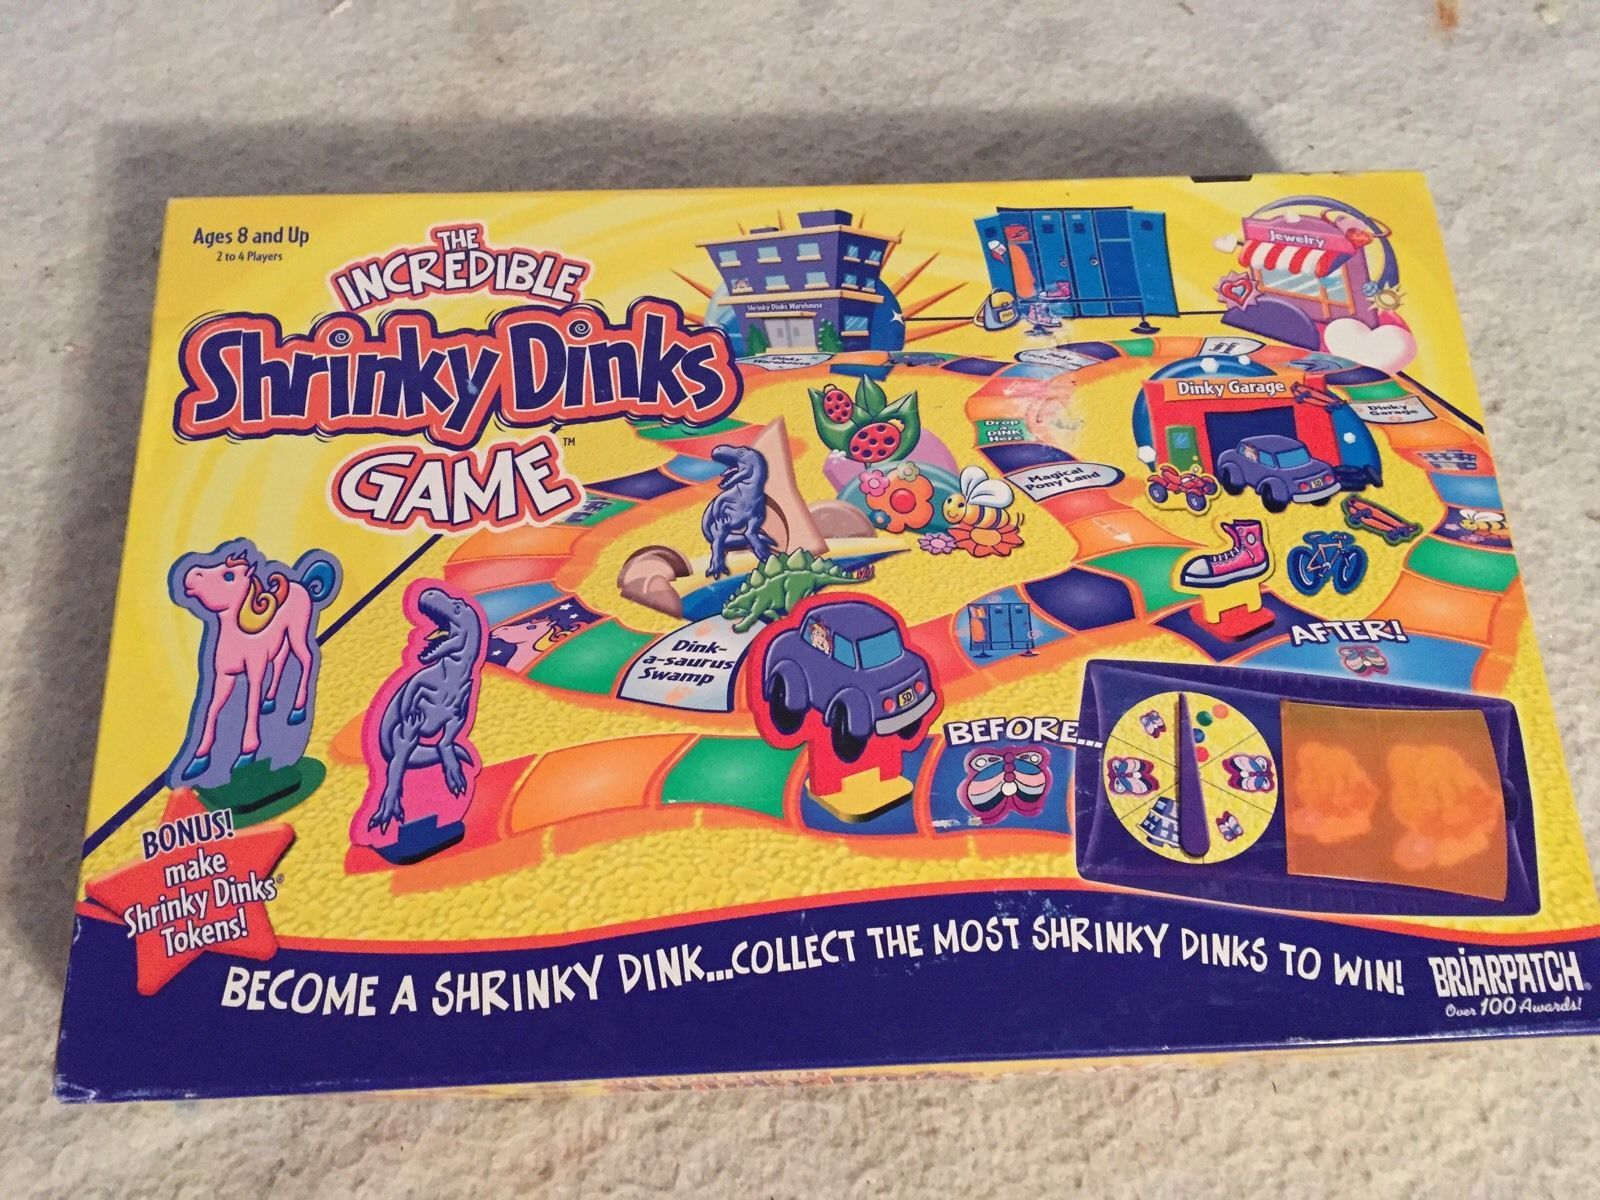 Primary image for THE INCREDIBLE SHRINKY DINKS GAME 2002 Briarpatch. Complete. 8+. 2-4 Players